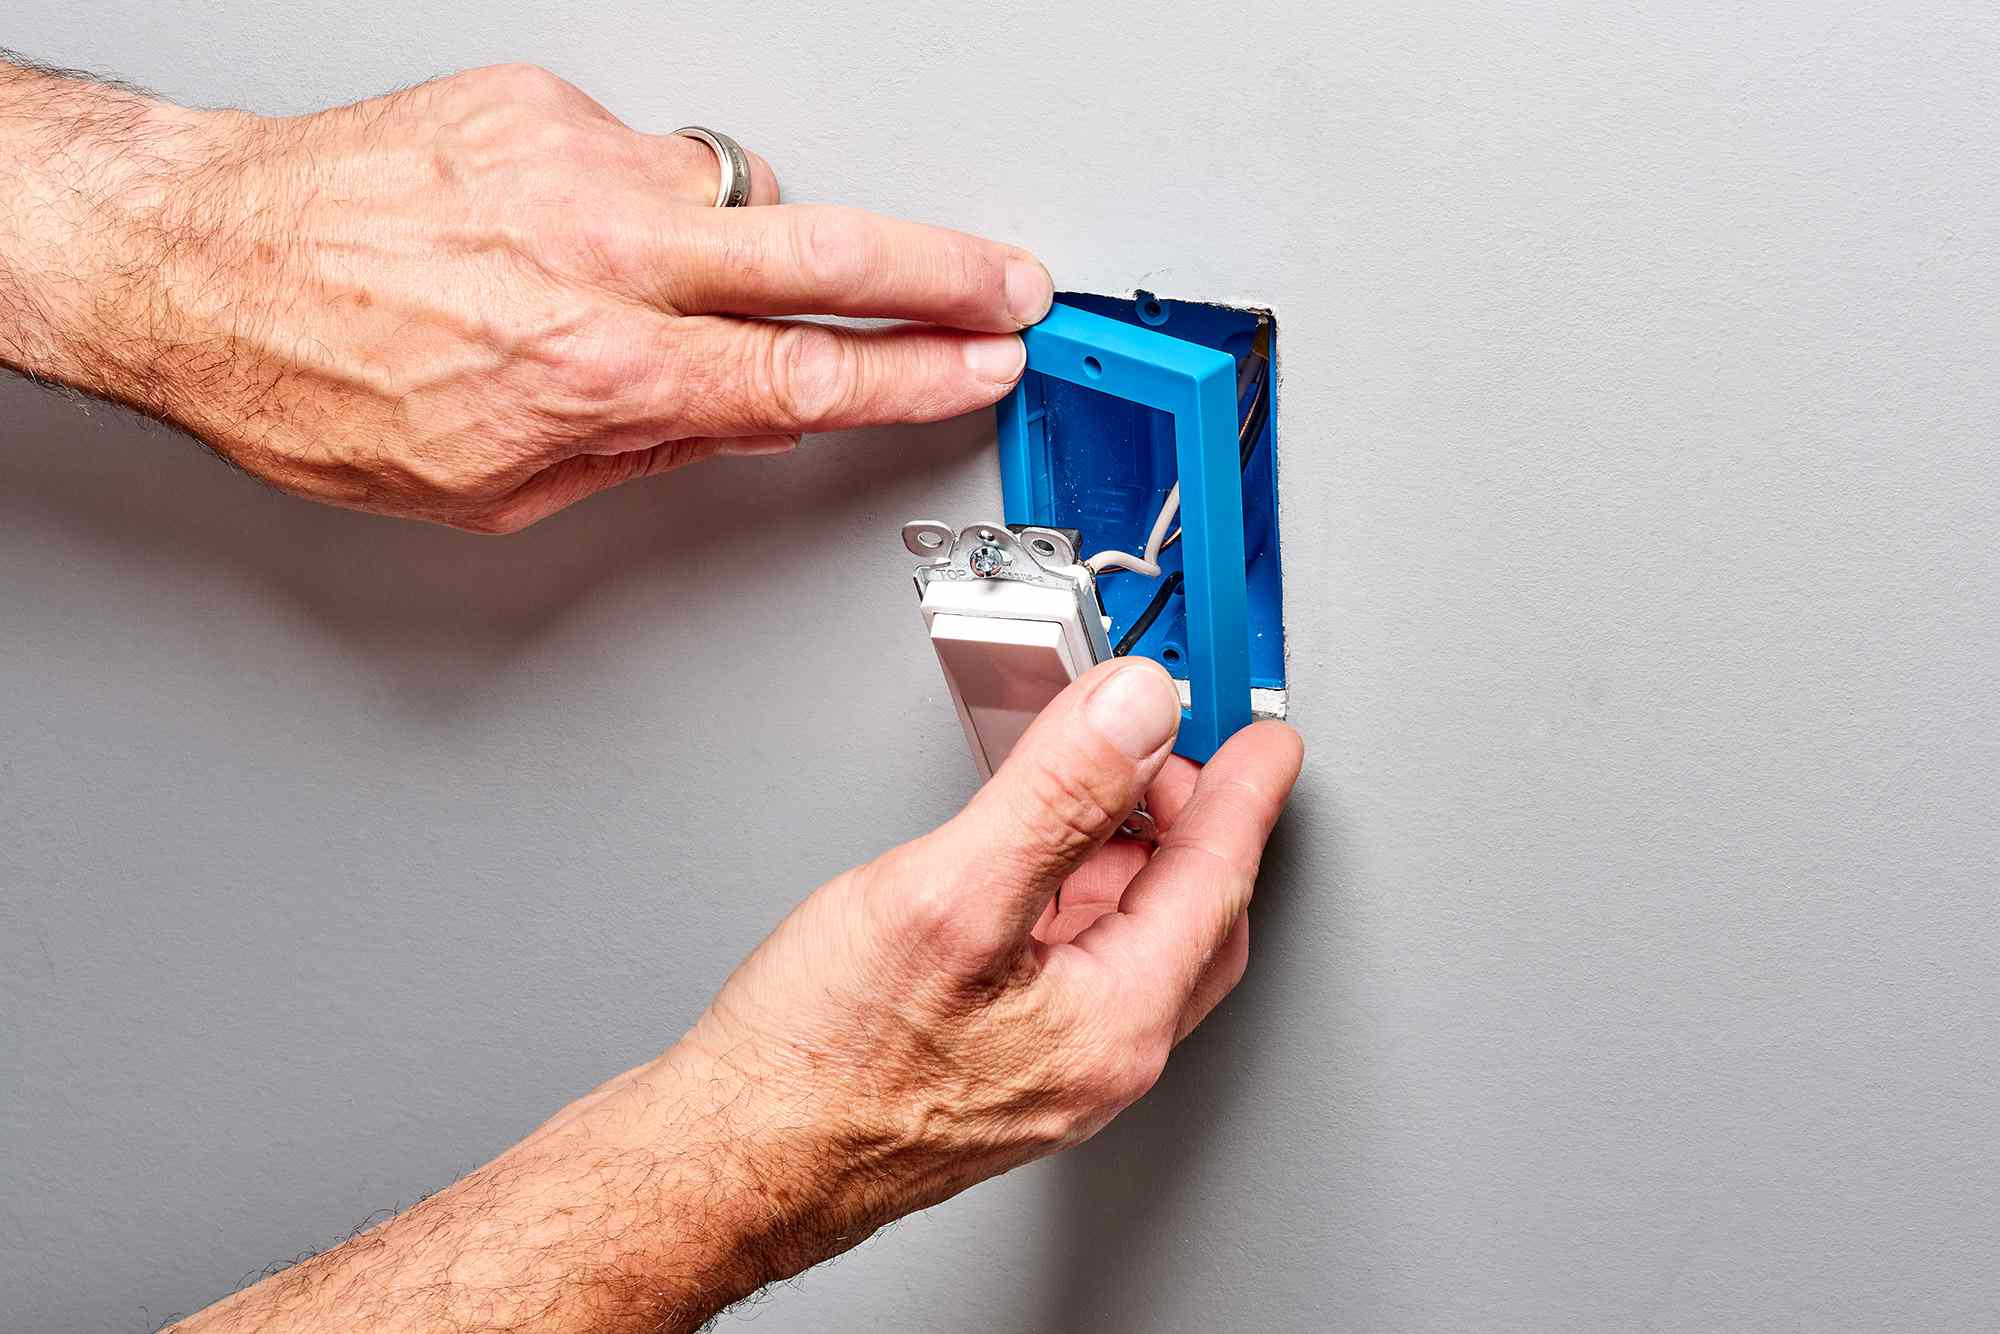 Blue box extender being slipped over the electrical box while holding the switch